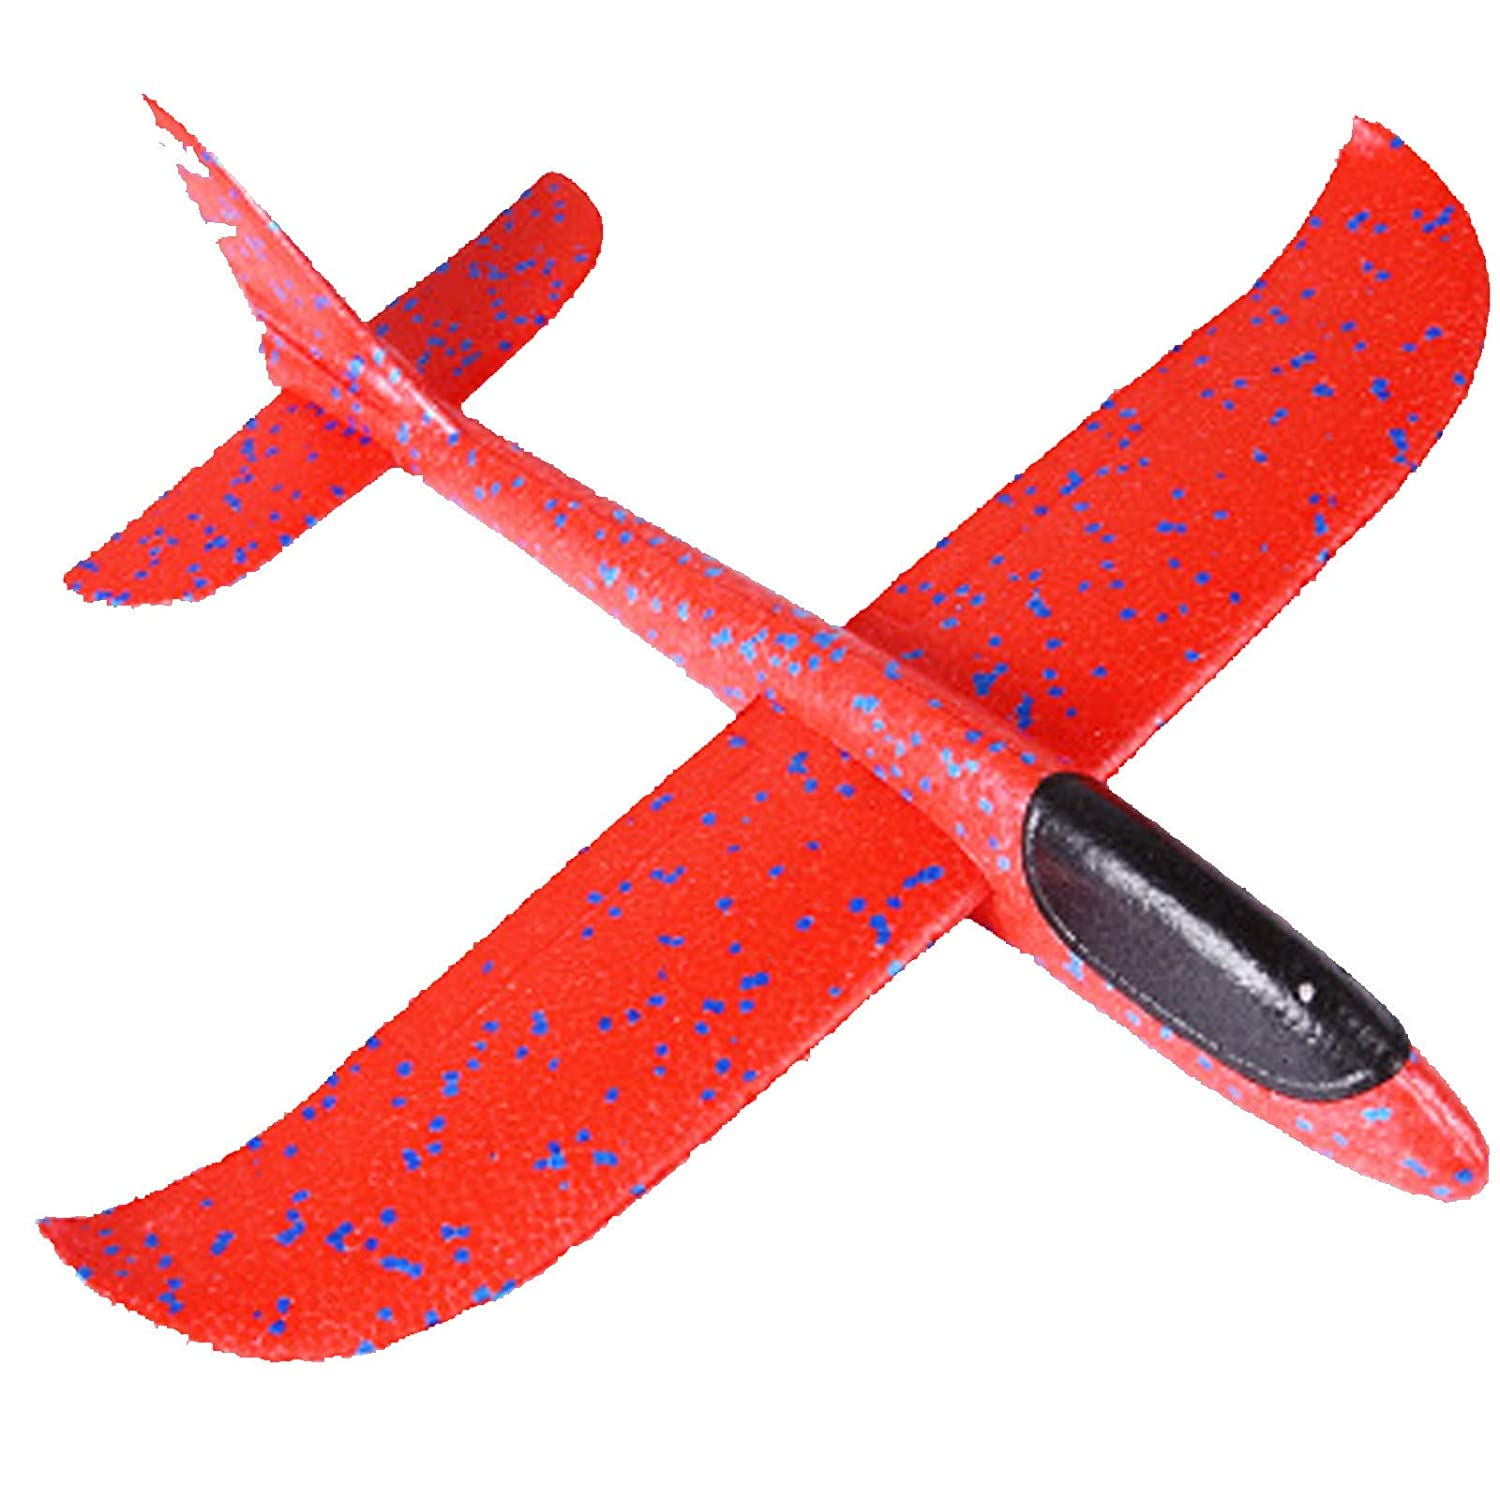 Hand Throwing Aircraft Foam Flying Glider Outlet ☆ Free Shipping Purchase Toy,Iner